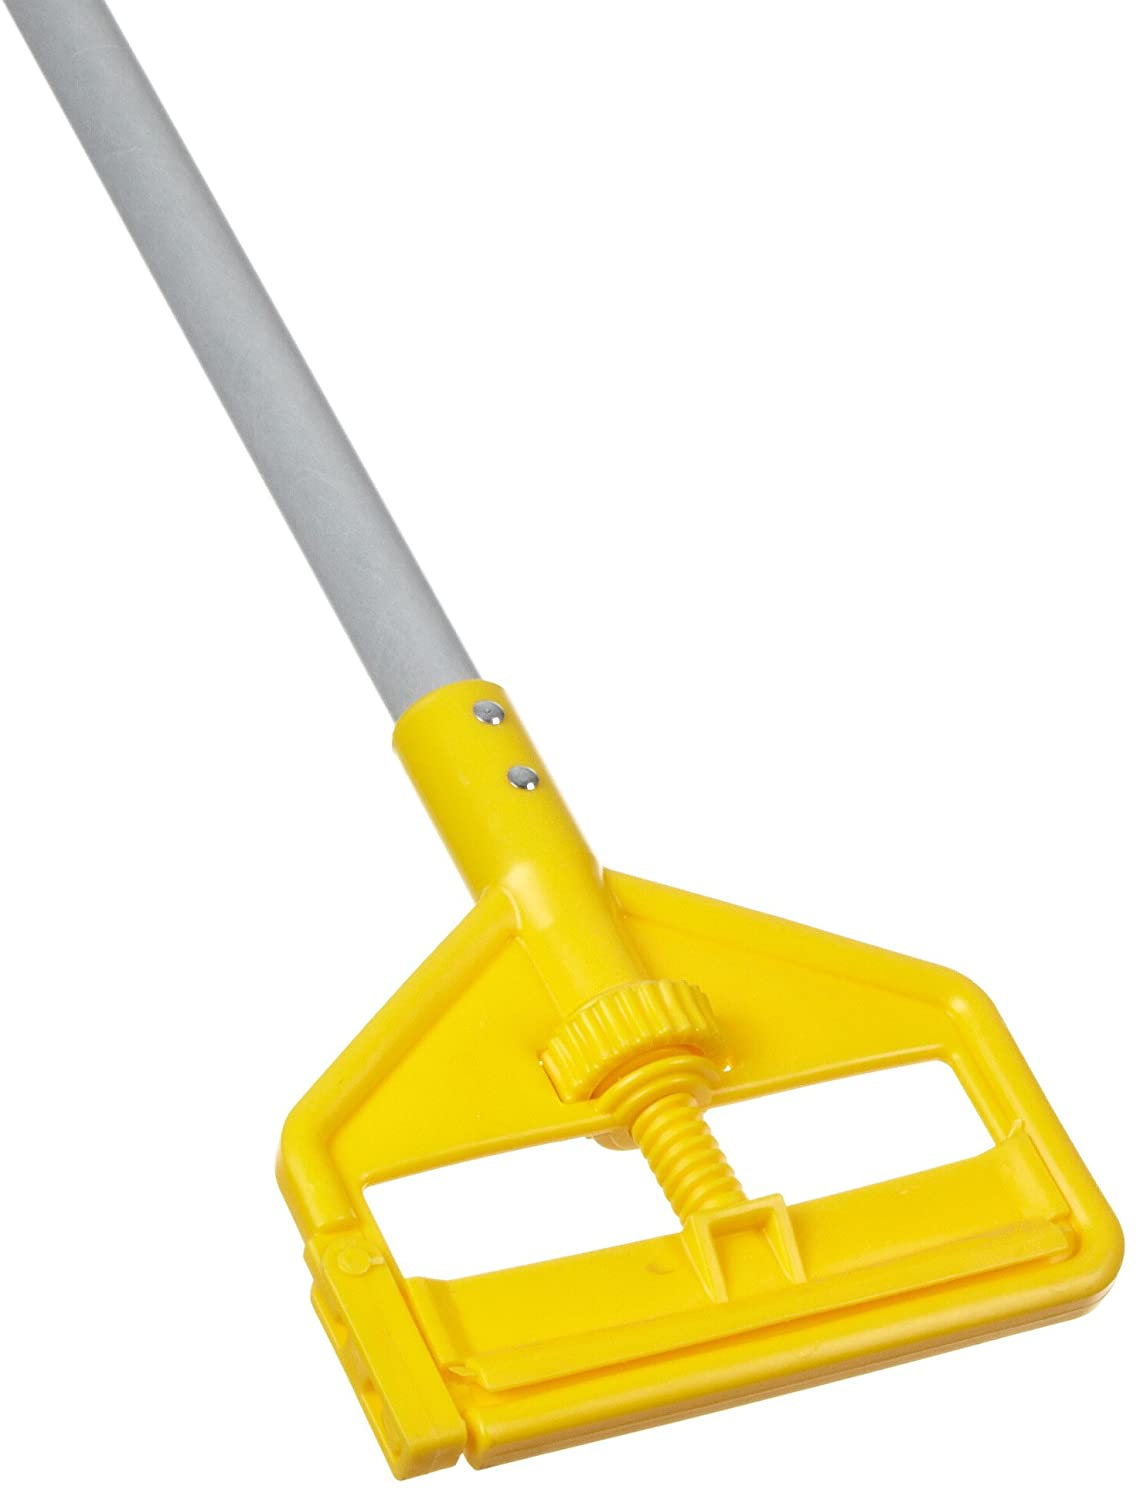 Rubbermaid Commercial Products Invader Side Gate Wet Mop Handle, 54-Inch, FGH145000000